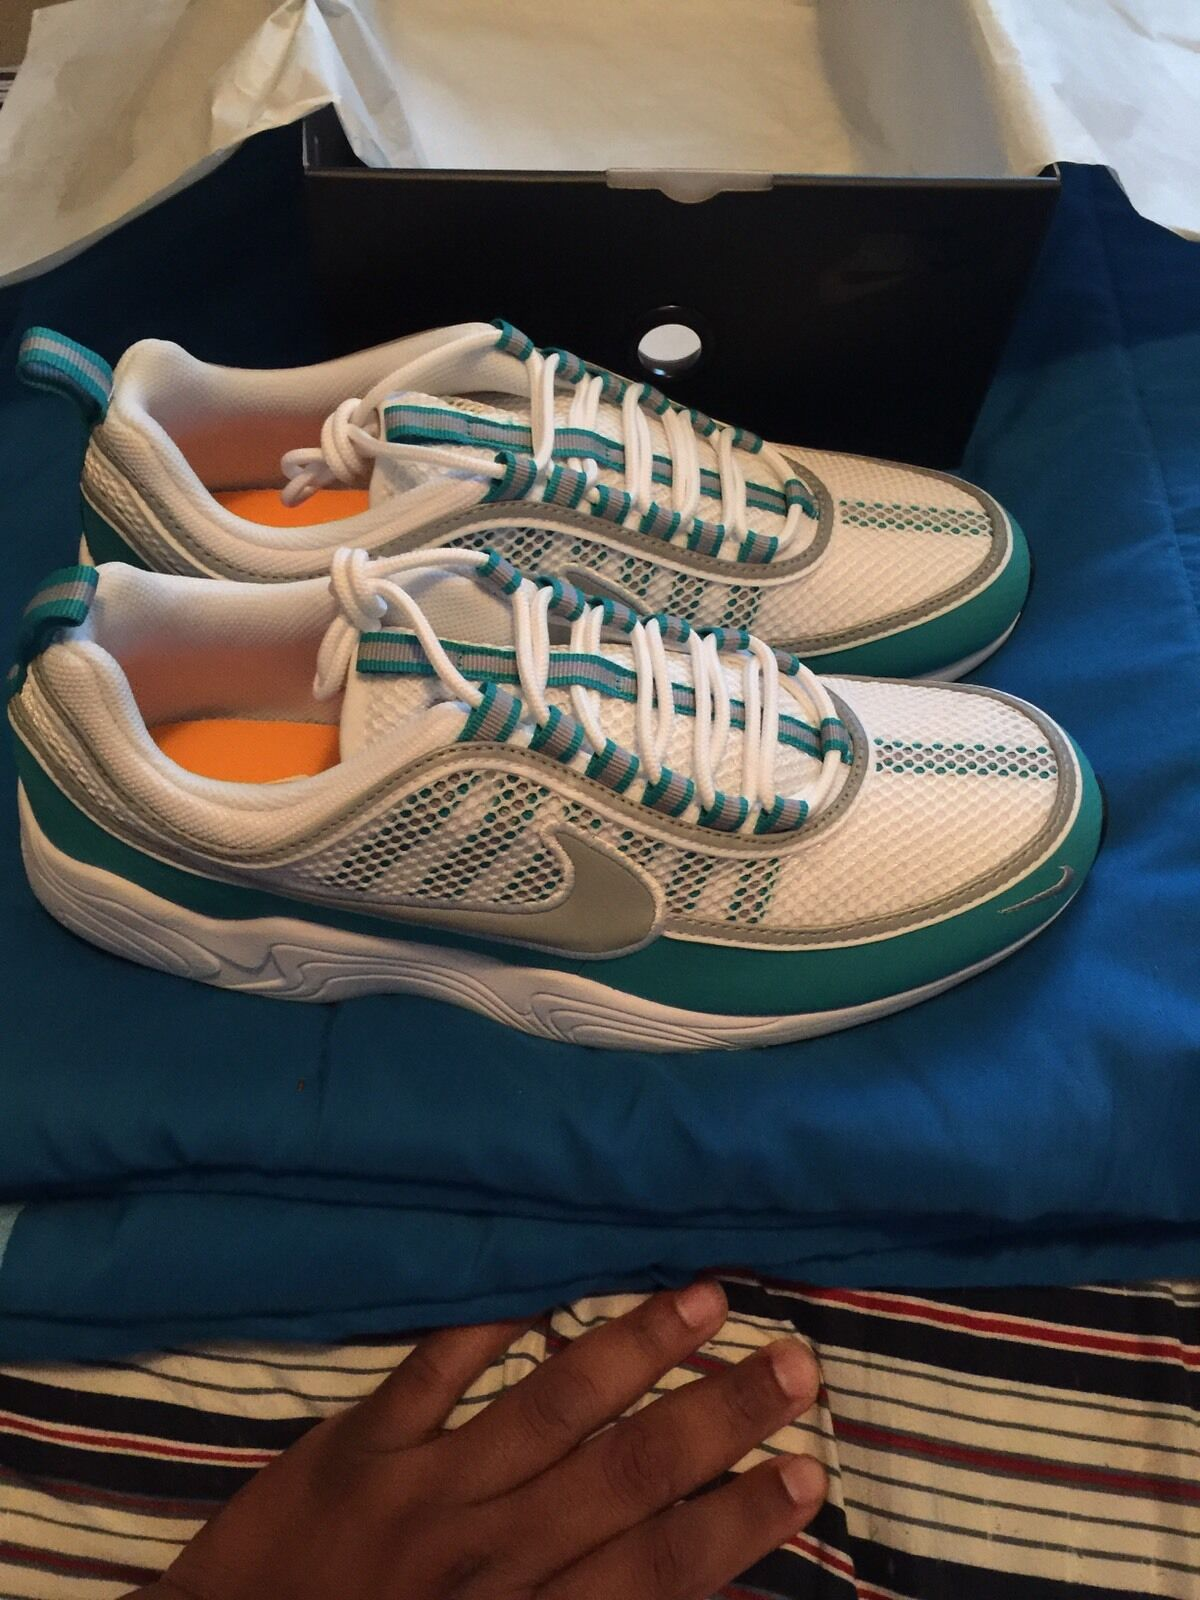 Nike Air Zoom Spiridon White/Silver/Turbo Green 11.5